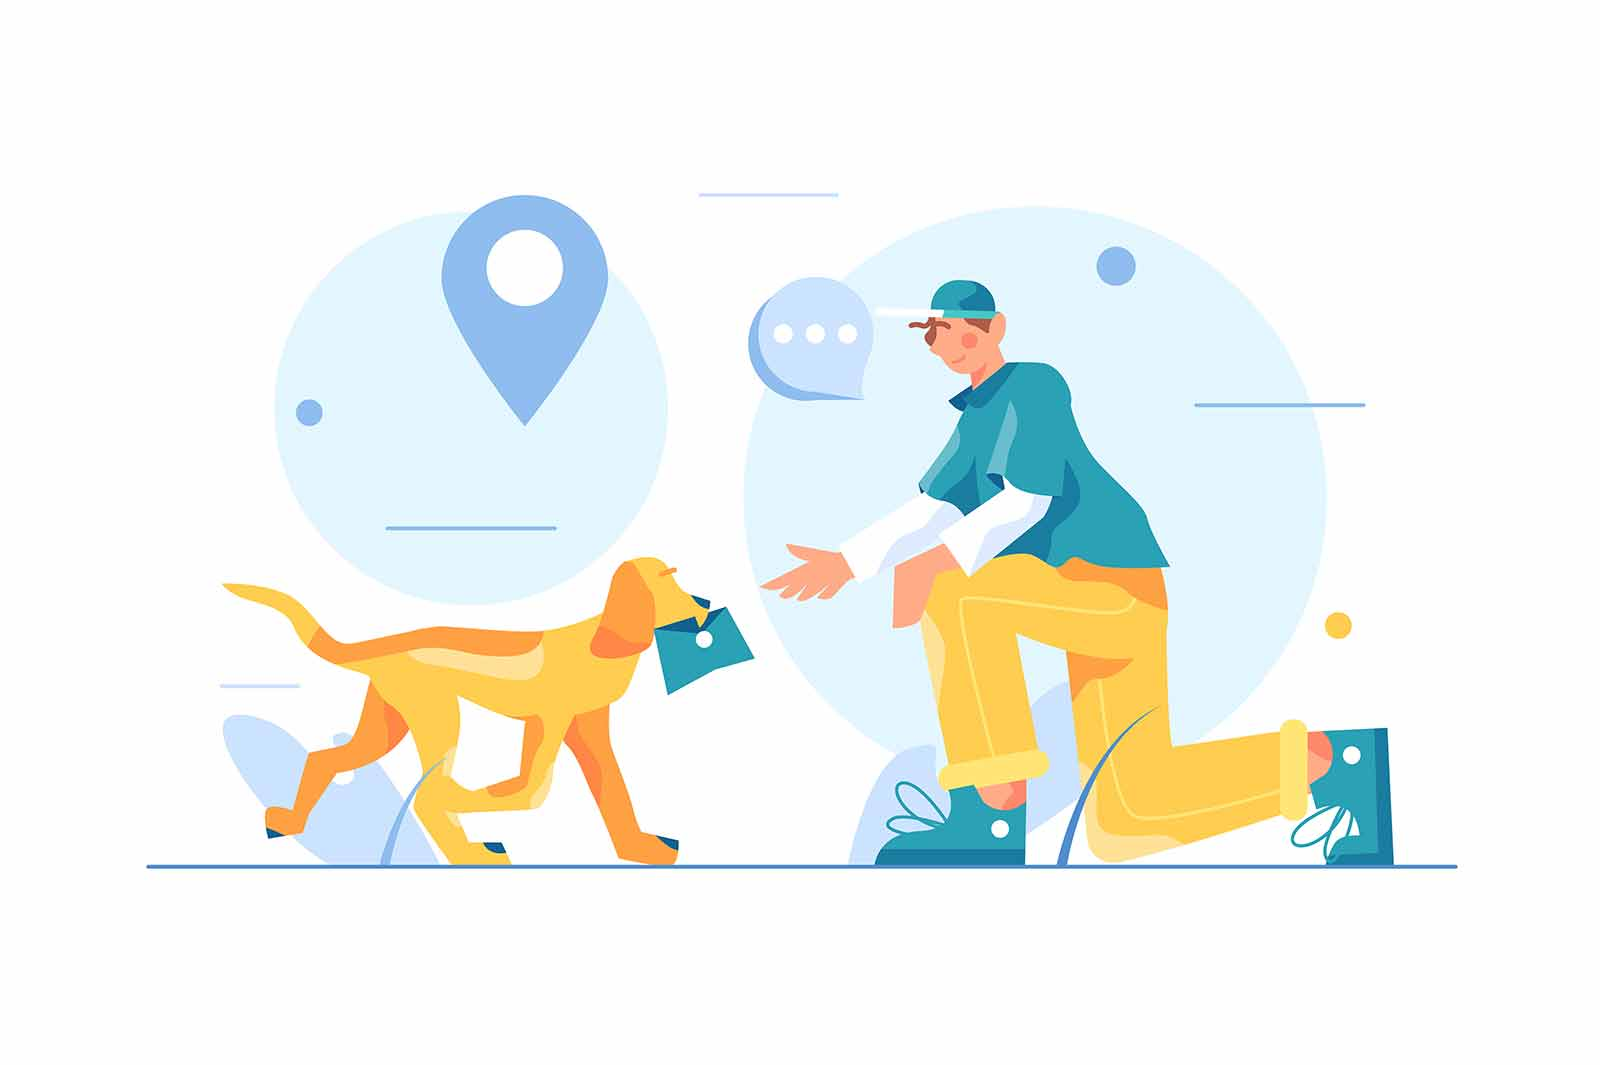 The dog brings the guy a letter in his mouth, the guy sits on his knee and stretches out his hand, big blue pin isolated on white background, flat vector illustration